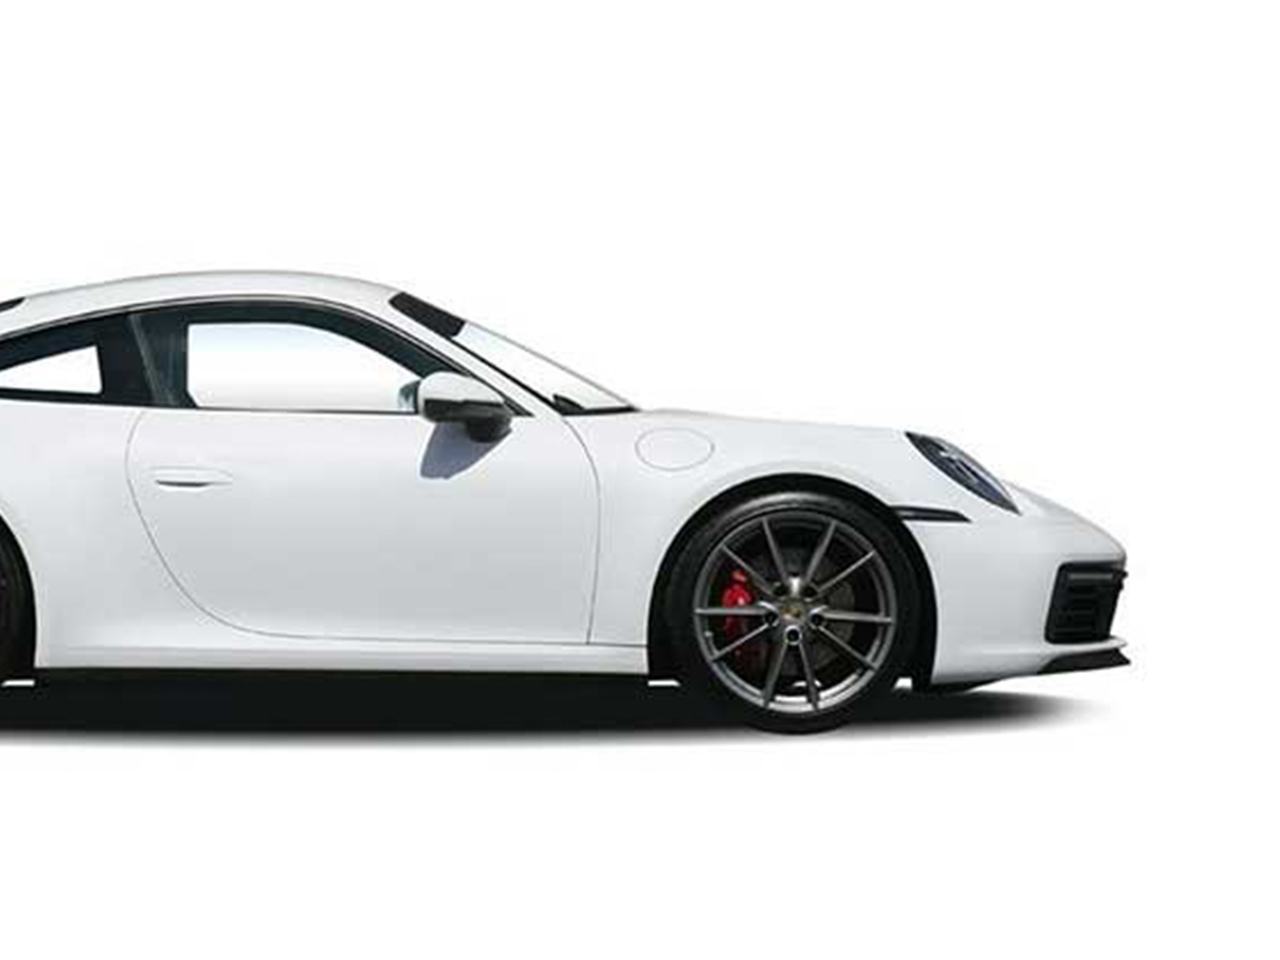 Porsche 911 Carrera (992) car for hire